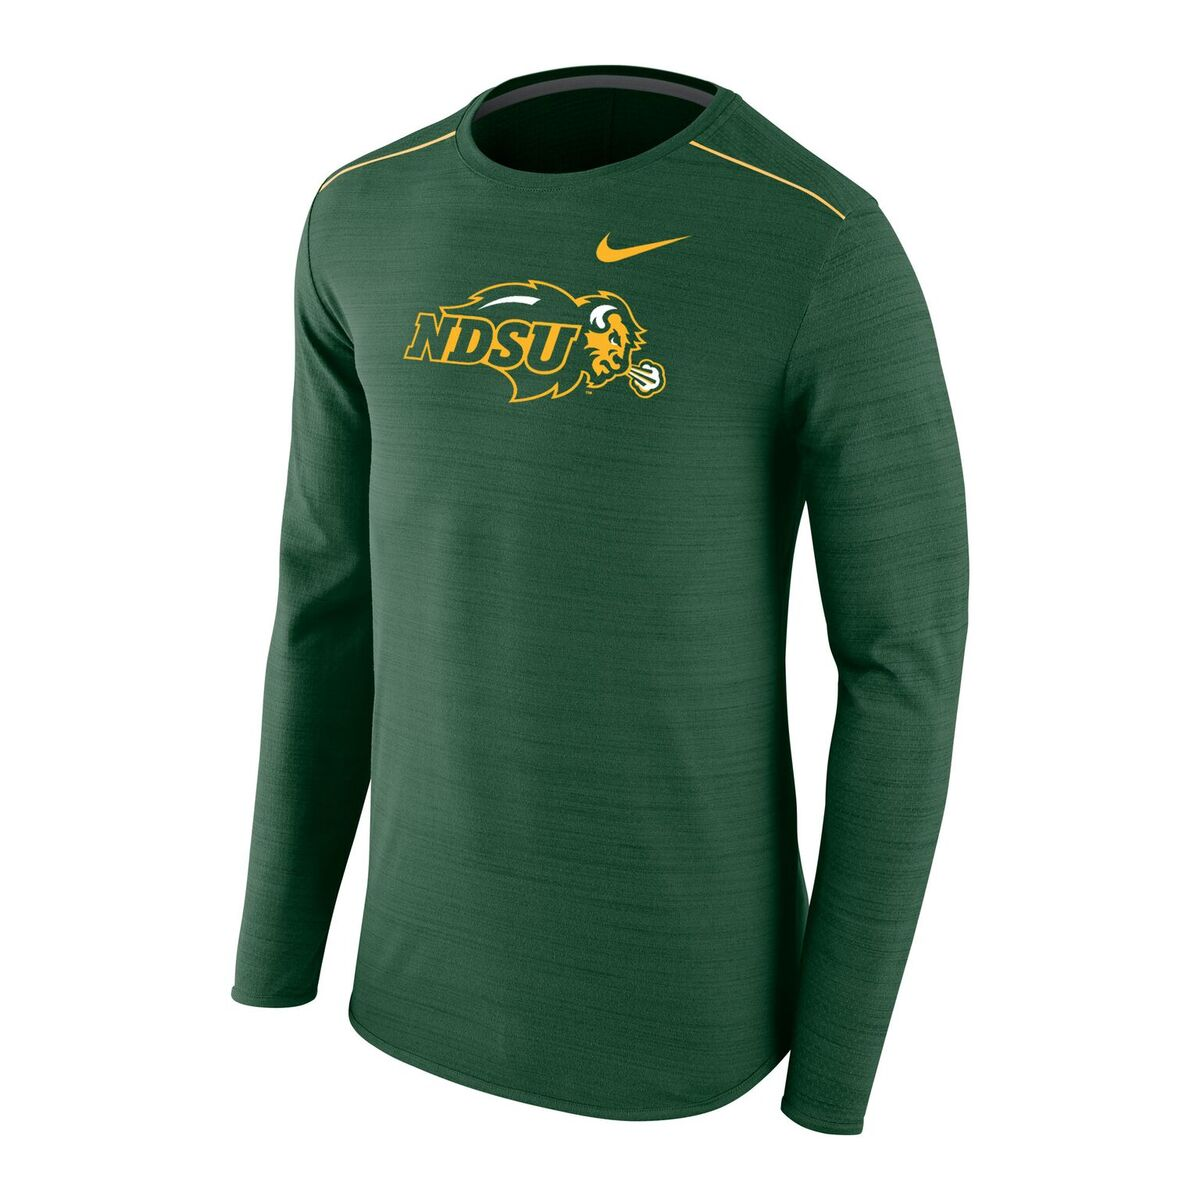 Long Sleeve T-Shirt - by Nike 2017 Sideline Collection